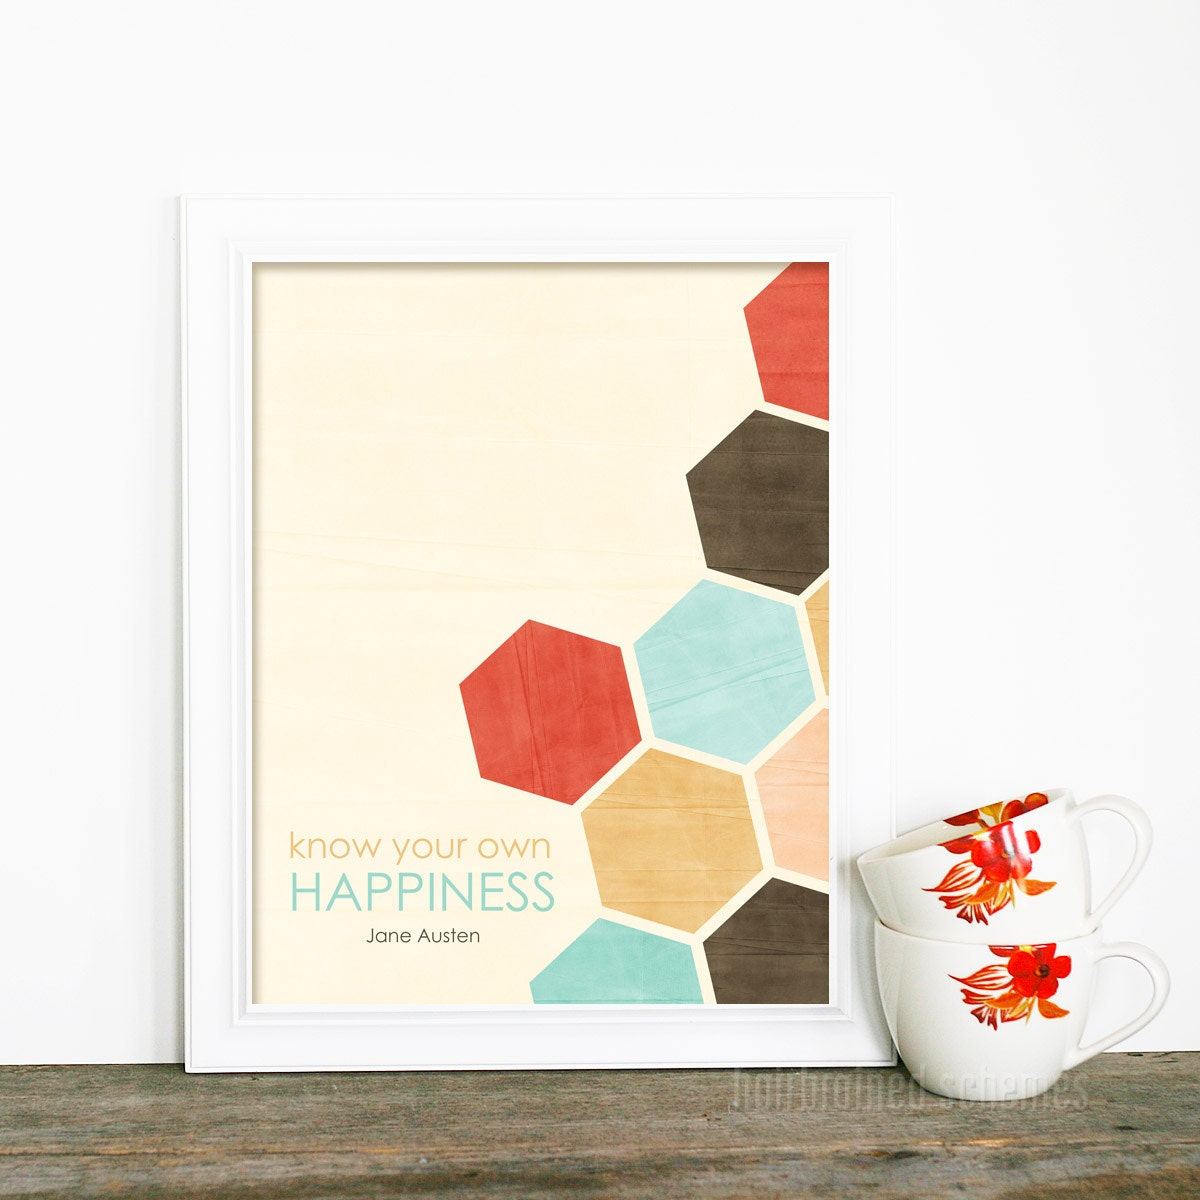 Jane Austen Digital Art Print - Know Your Own Happiness - Geometric Honeycomb Southwest Inspired Aqua Red Brown - hairbrainedschemes